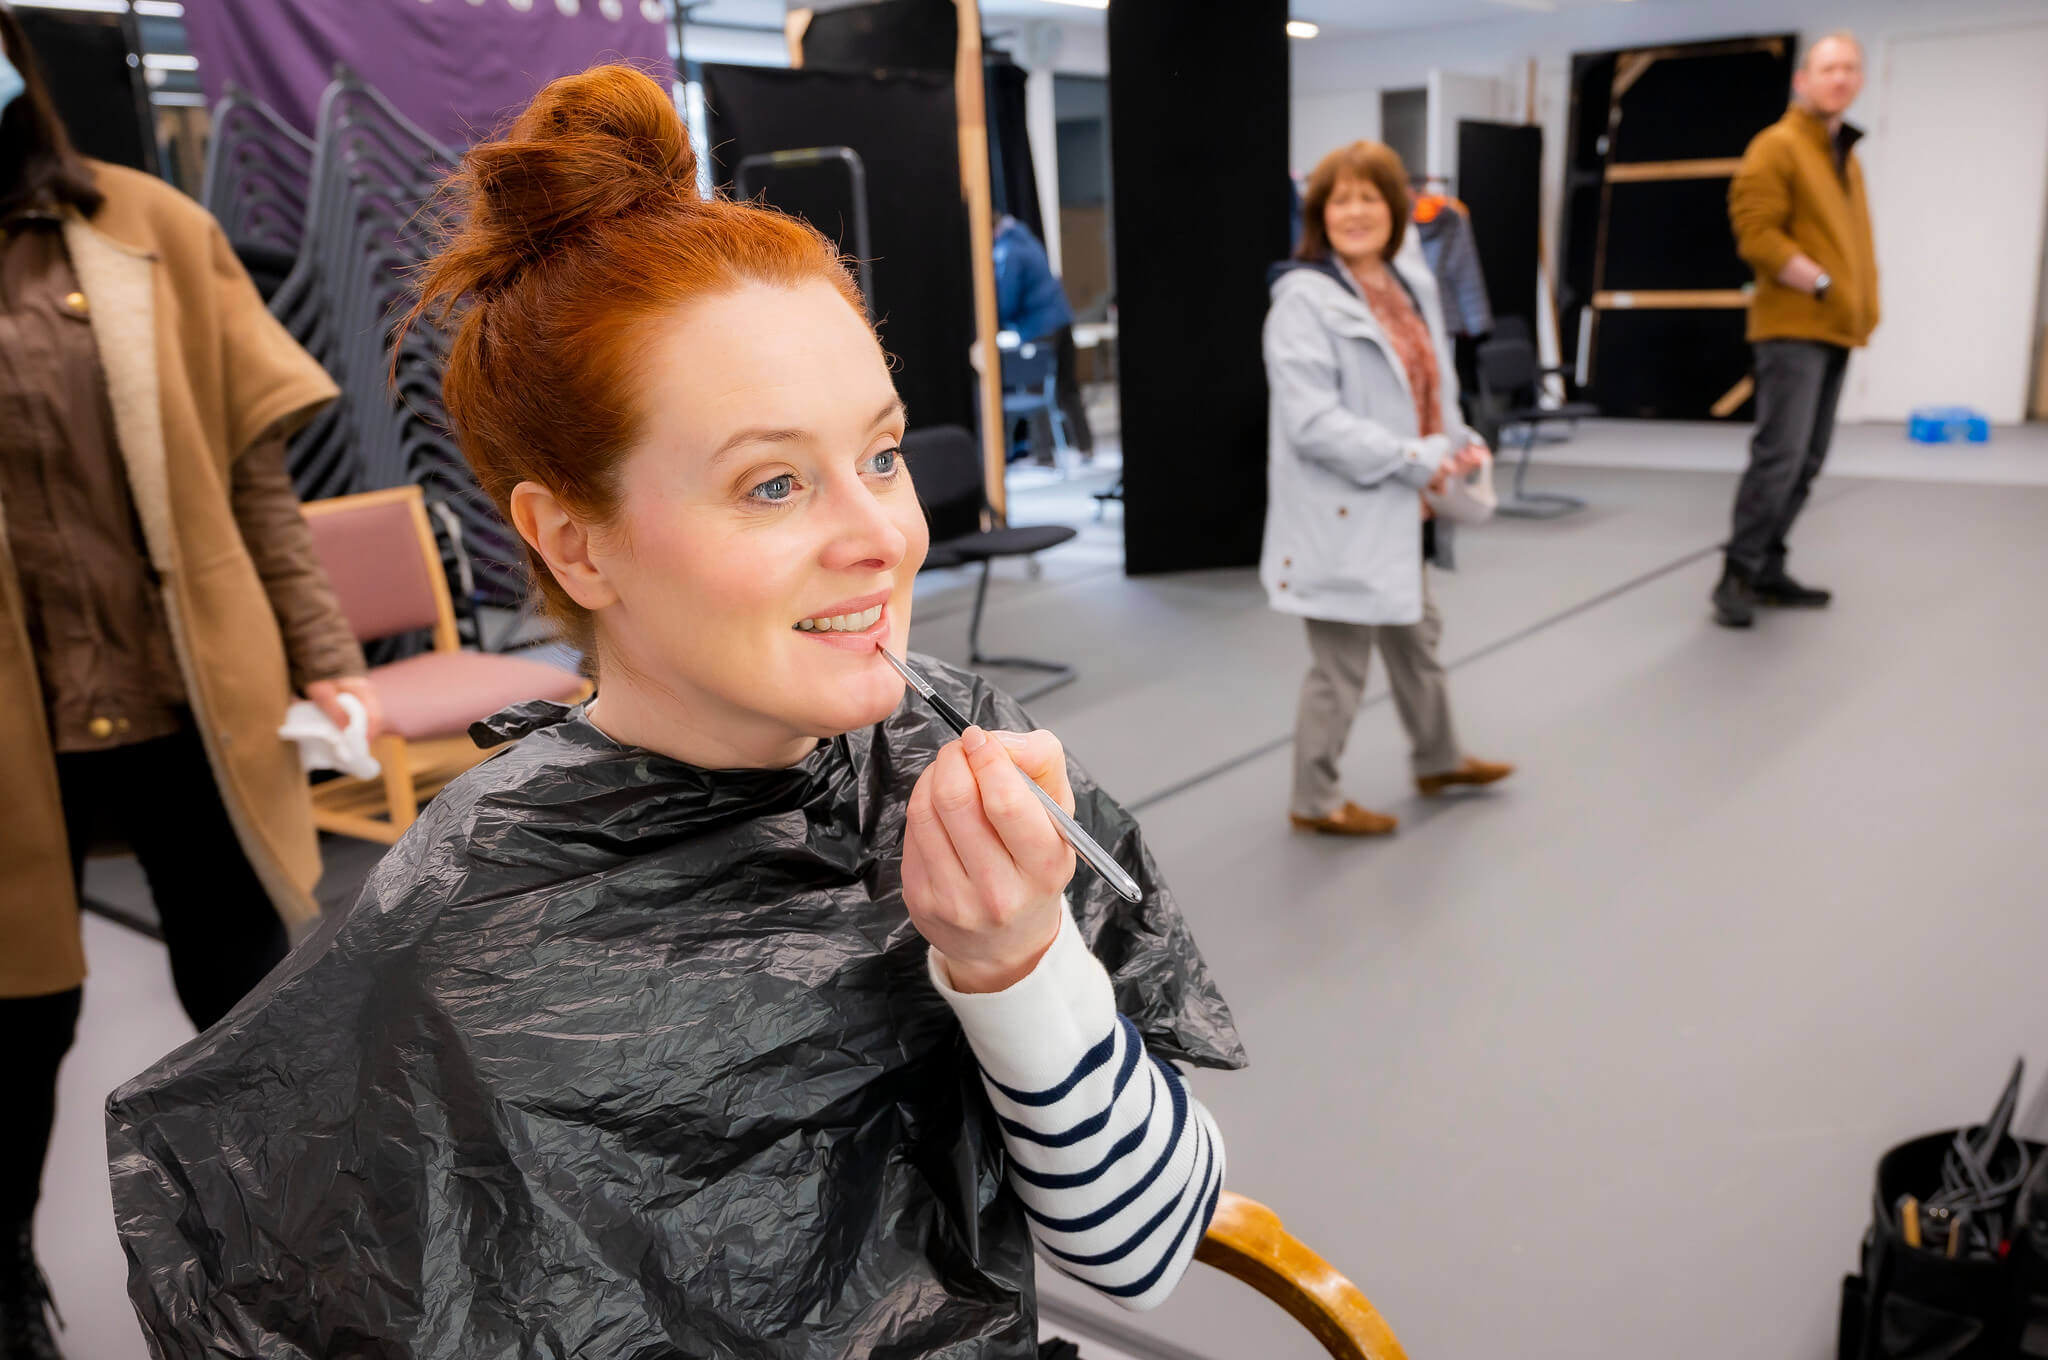 Rehearsal image for Fibres films showing Suzanne Magowan doing makeup